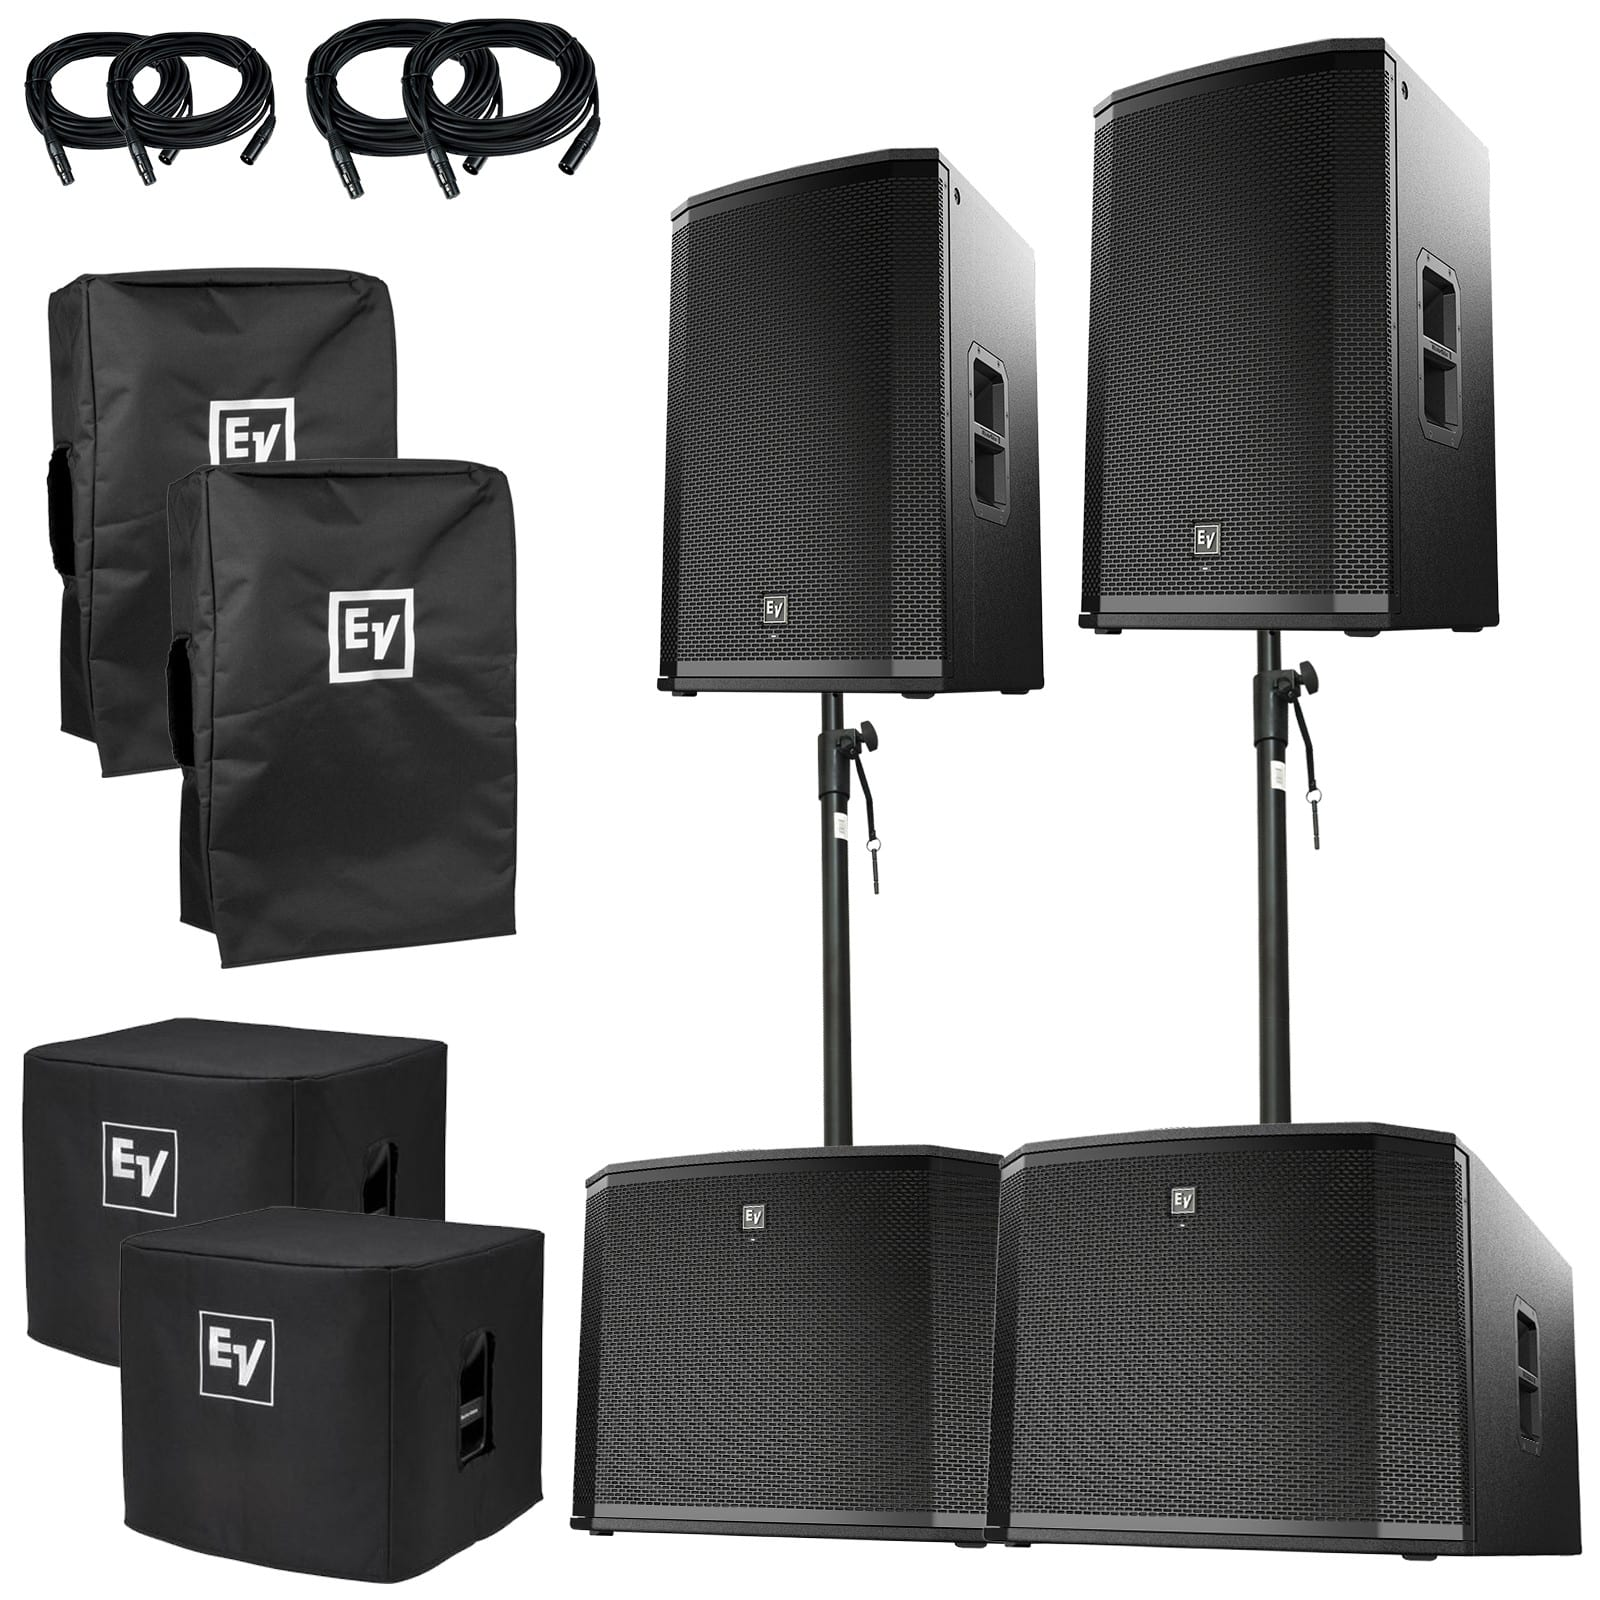 2-electro-voice-etx-15p-loudspeakers-2-etx-18sp-subwoofers-w-cables-poles-covers-package-0a3.jpg